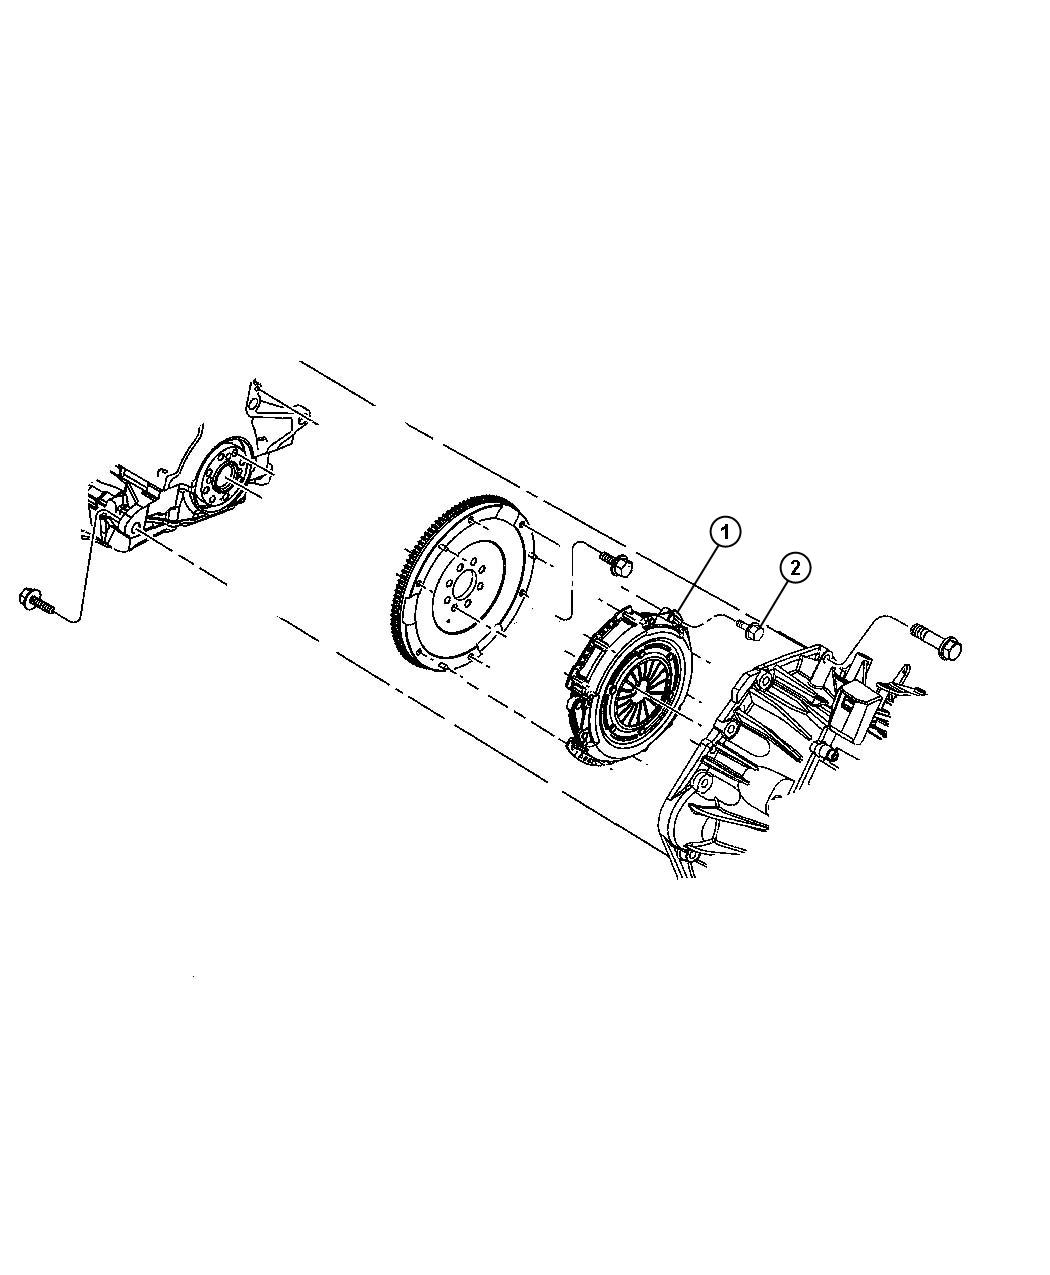 Dodge Caliber Clutch kit. Used for: pressure plate and